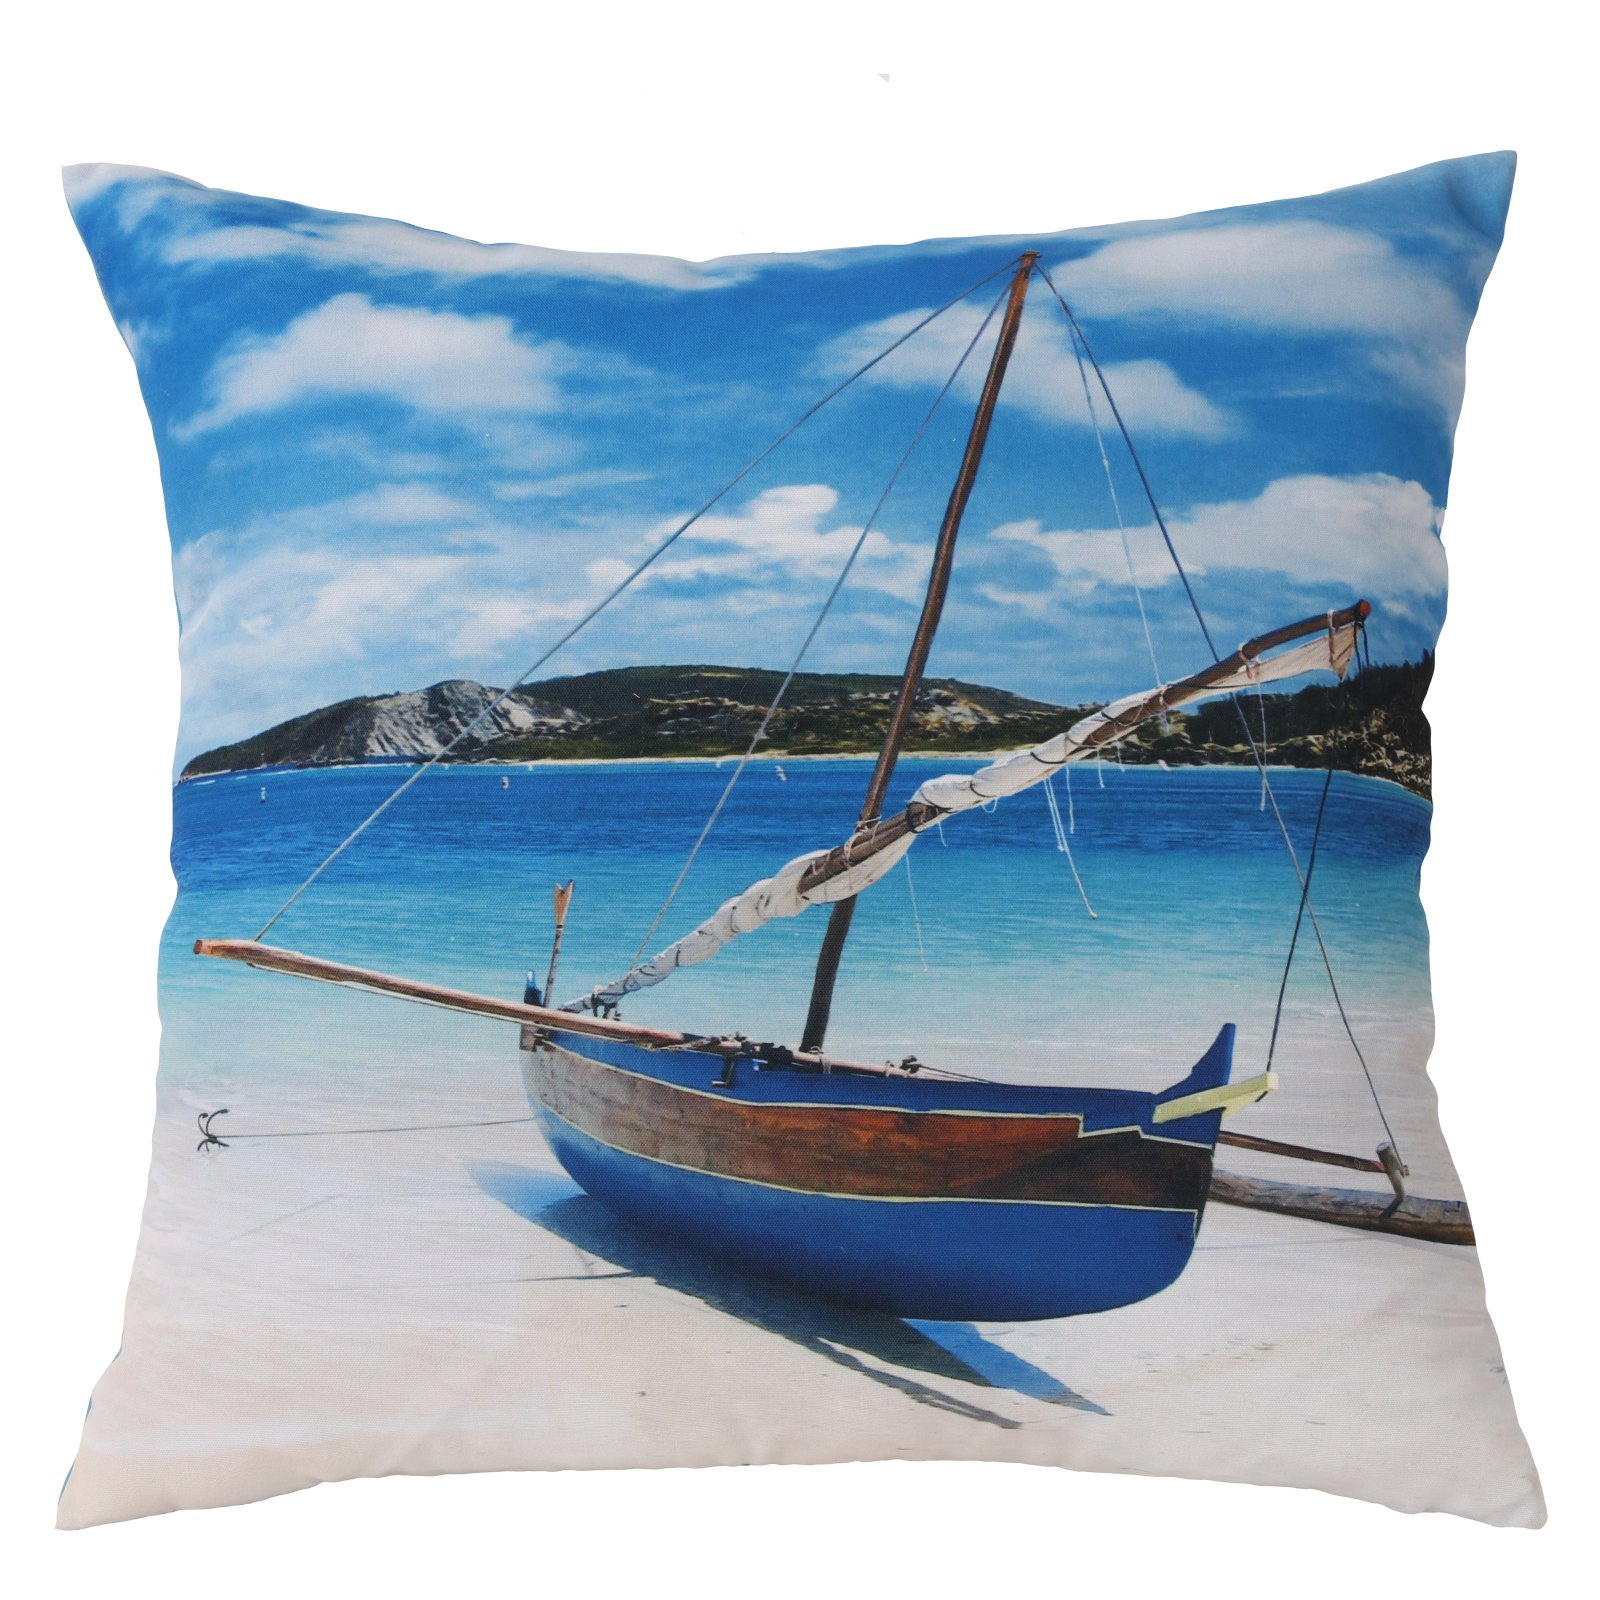 Habitat Sailboat Outdoor Throw Pillow